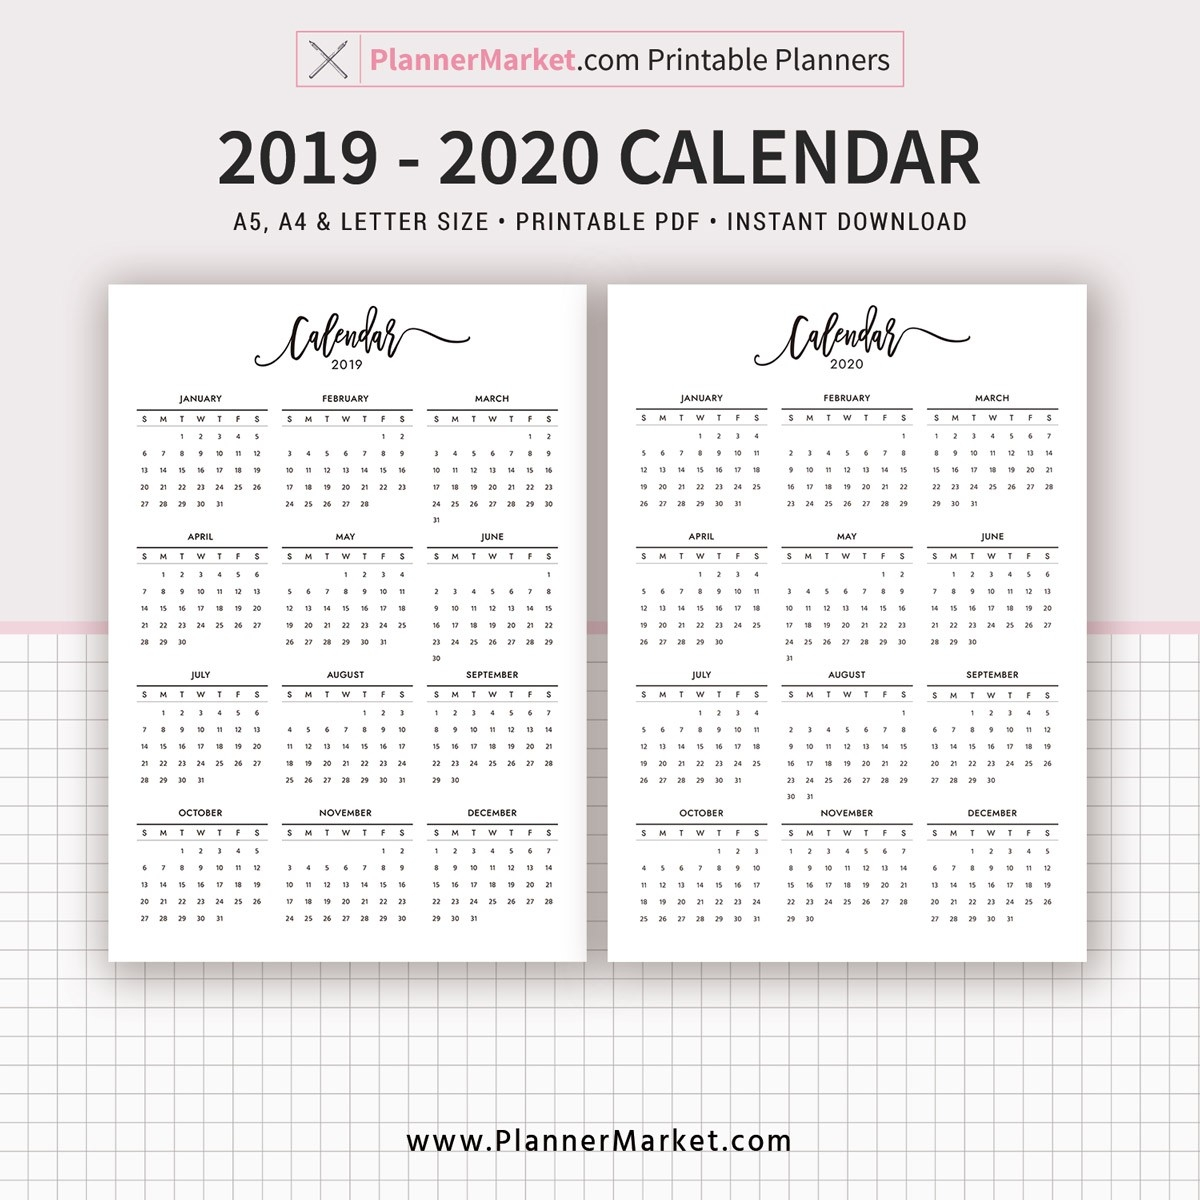 2019-2020 Yearly Calendar Printable, Filofax A5, A4, Letter Size, Planner  Refill, Planner Pages, Planner Inserts, Instant Download  Full Size Calendar 2020